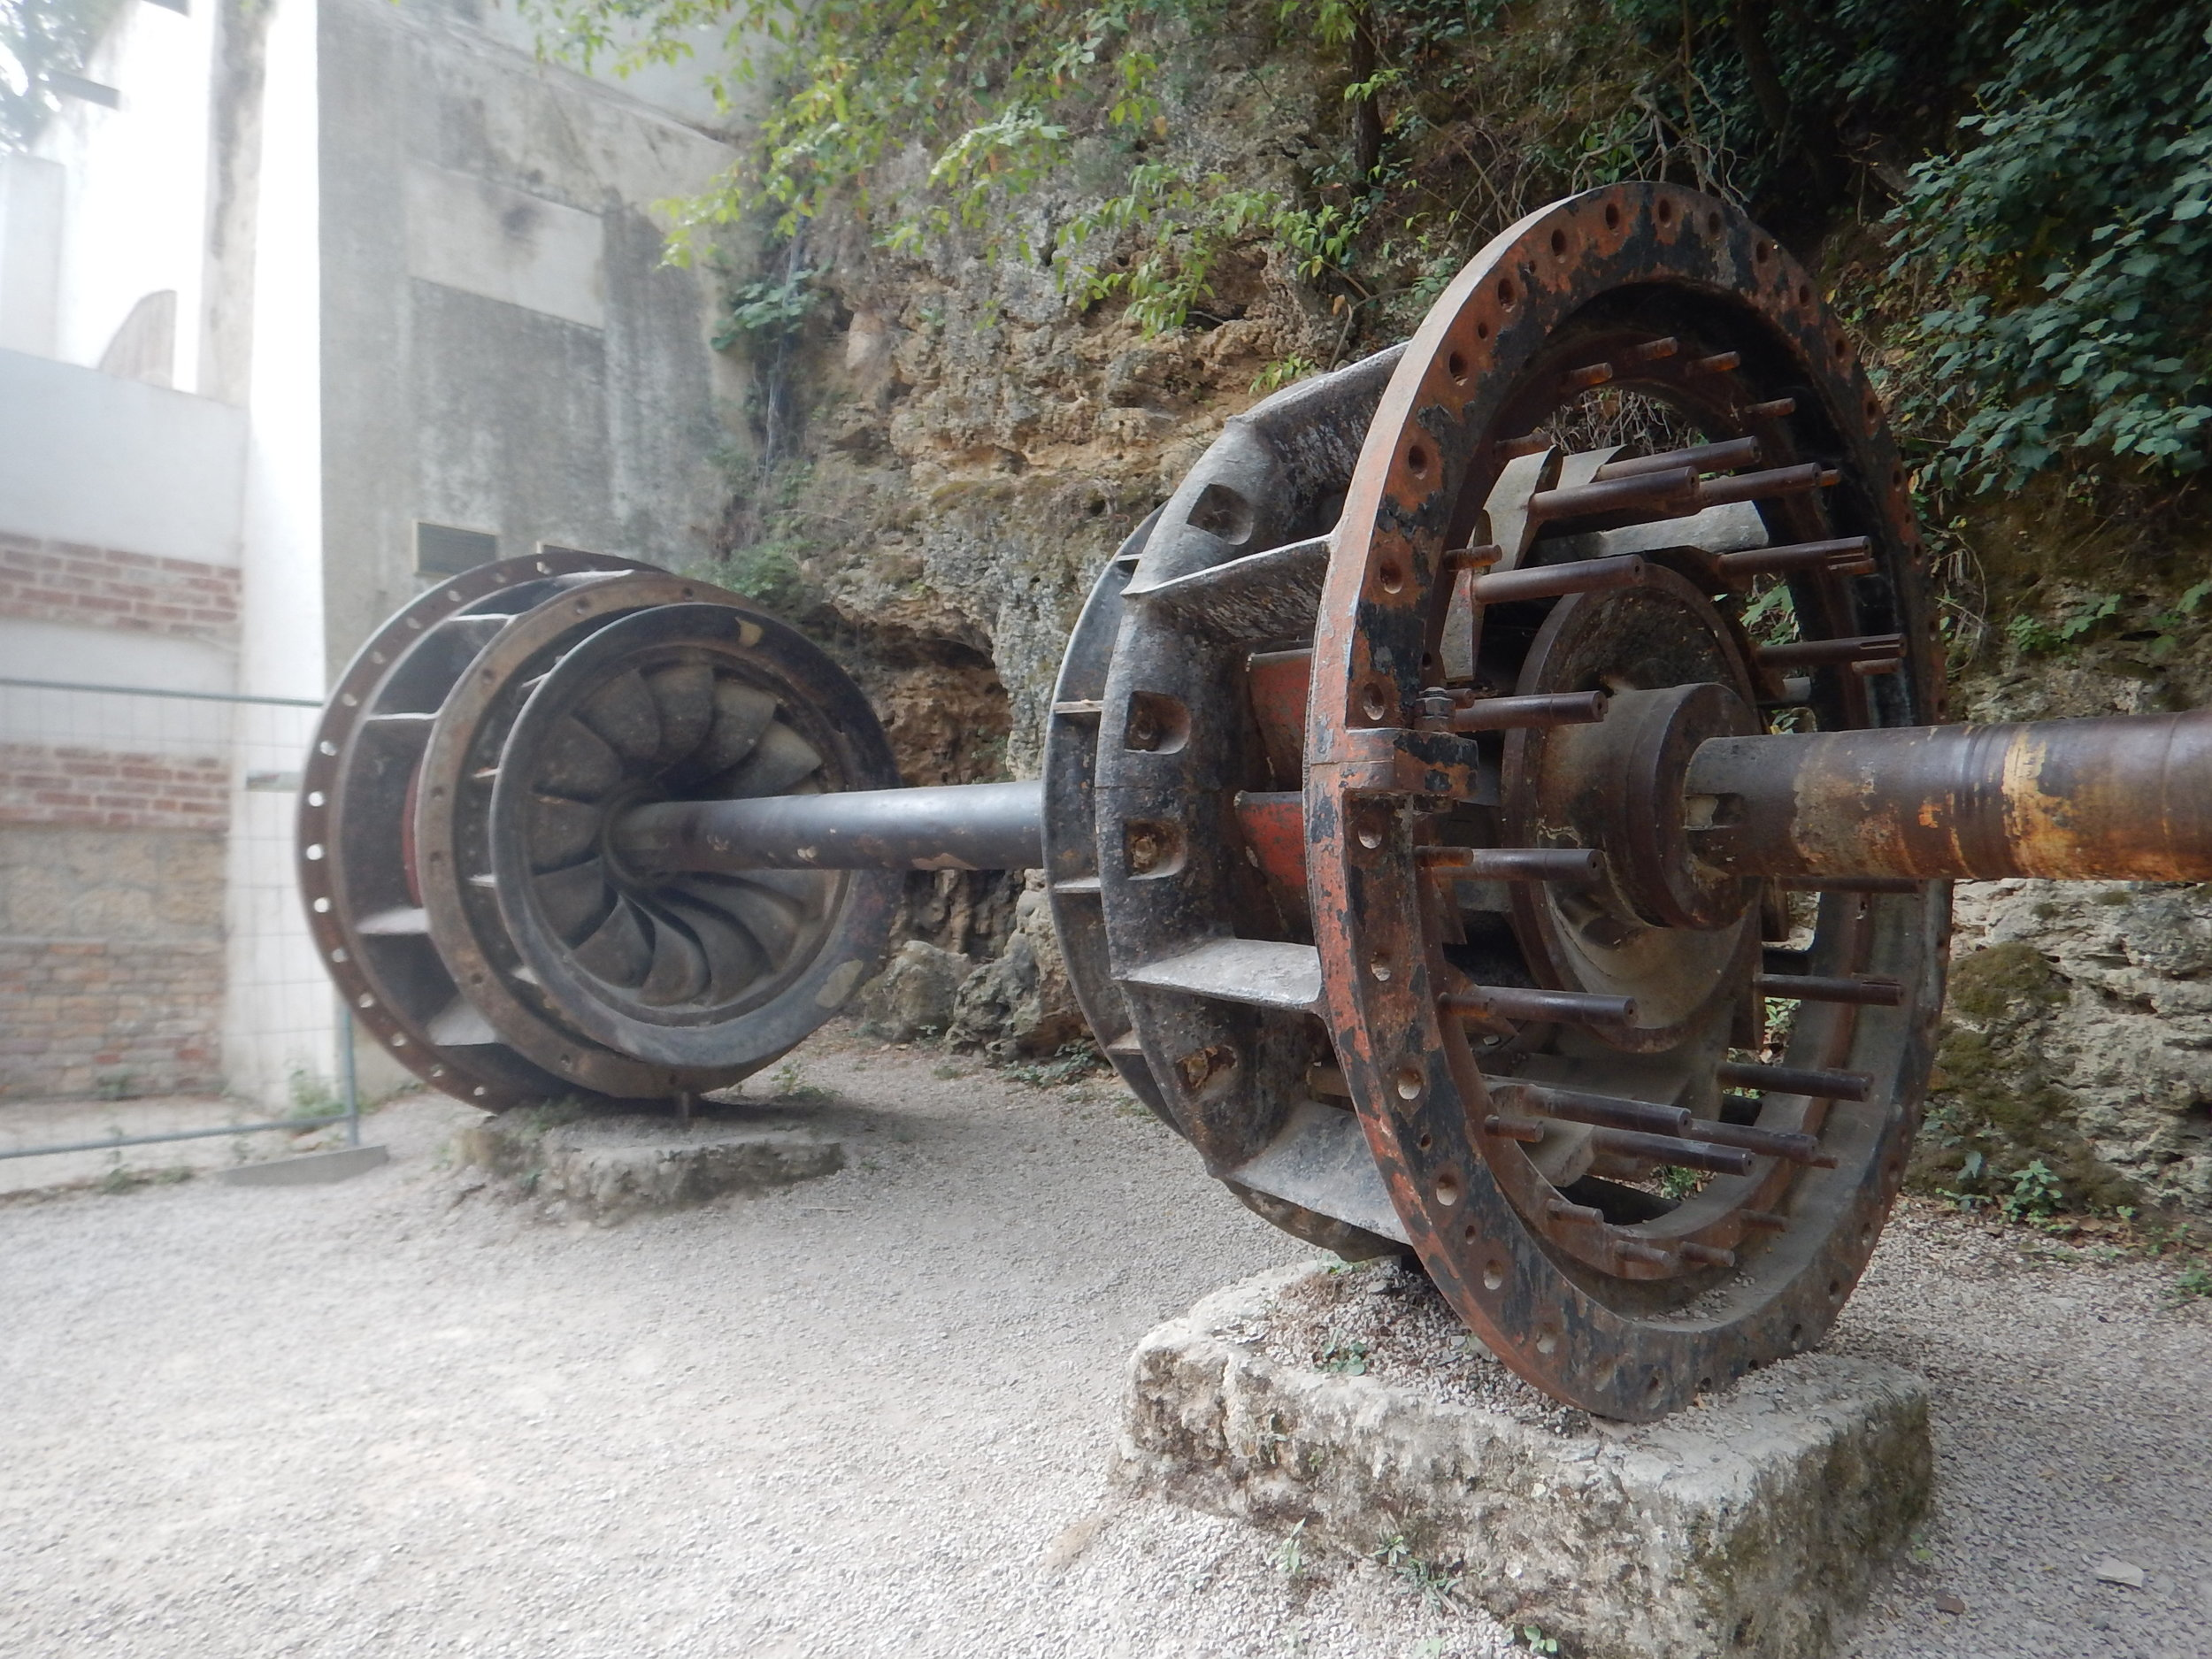 what remains of his original turbine in Krka National Park.